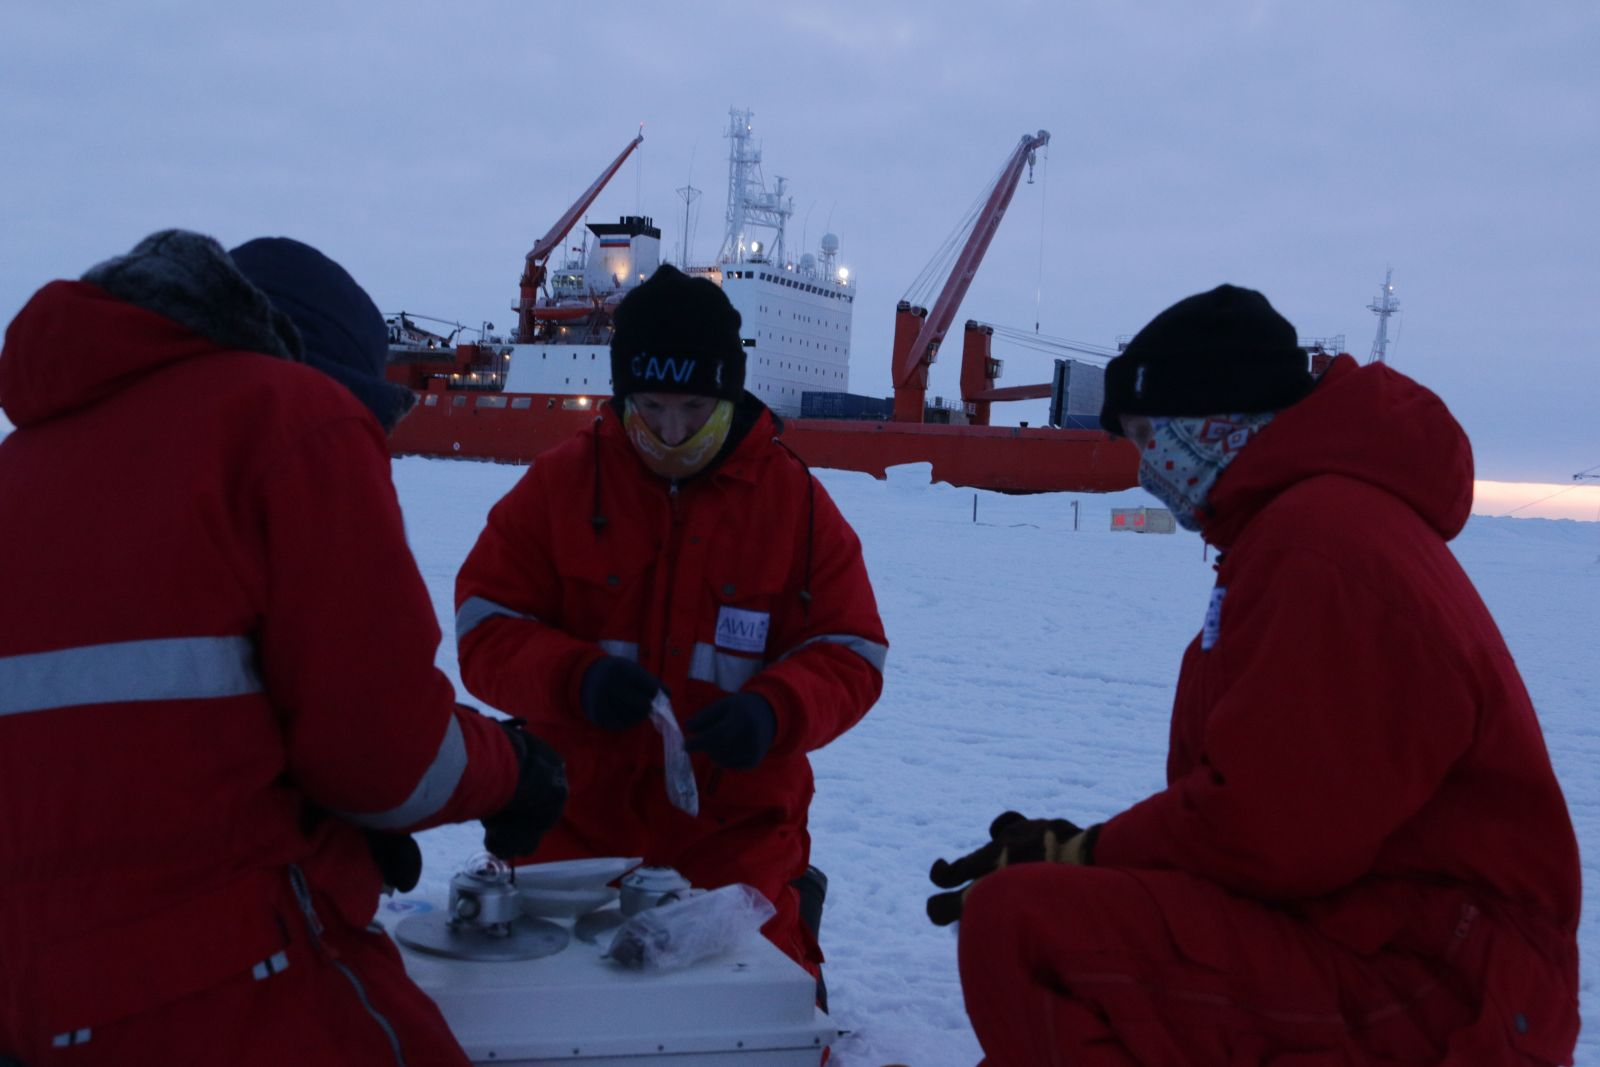 MOSAiC School participants set up a radiometer on the sea ice. Radiometers were used to calibrate the sensors on each of the three meteorological stations. From left to right: Alex Mavrovic, Sean Horvath, and Tatiana Matveeva.